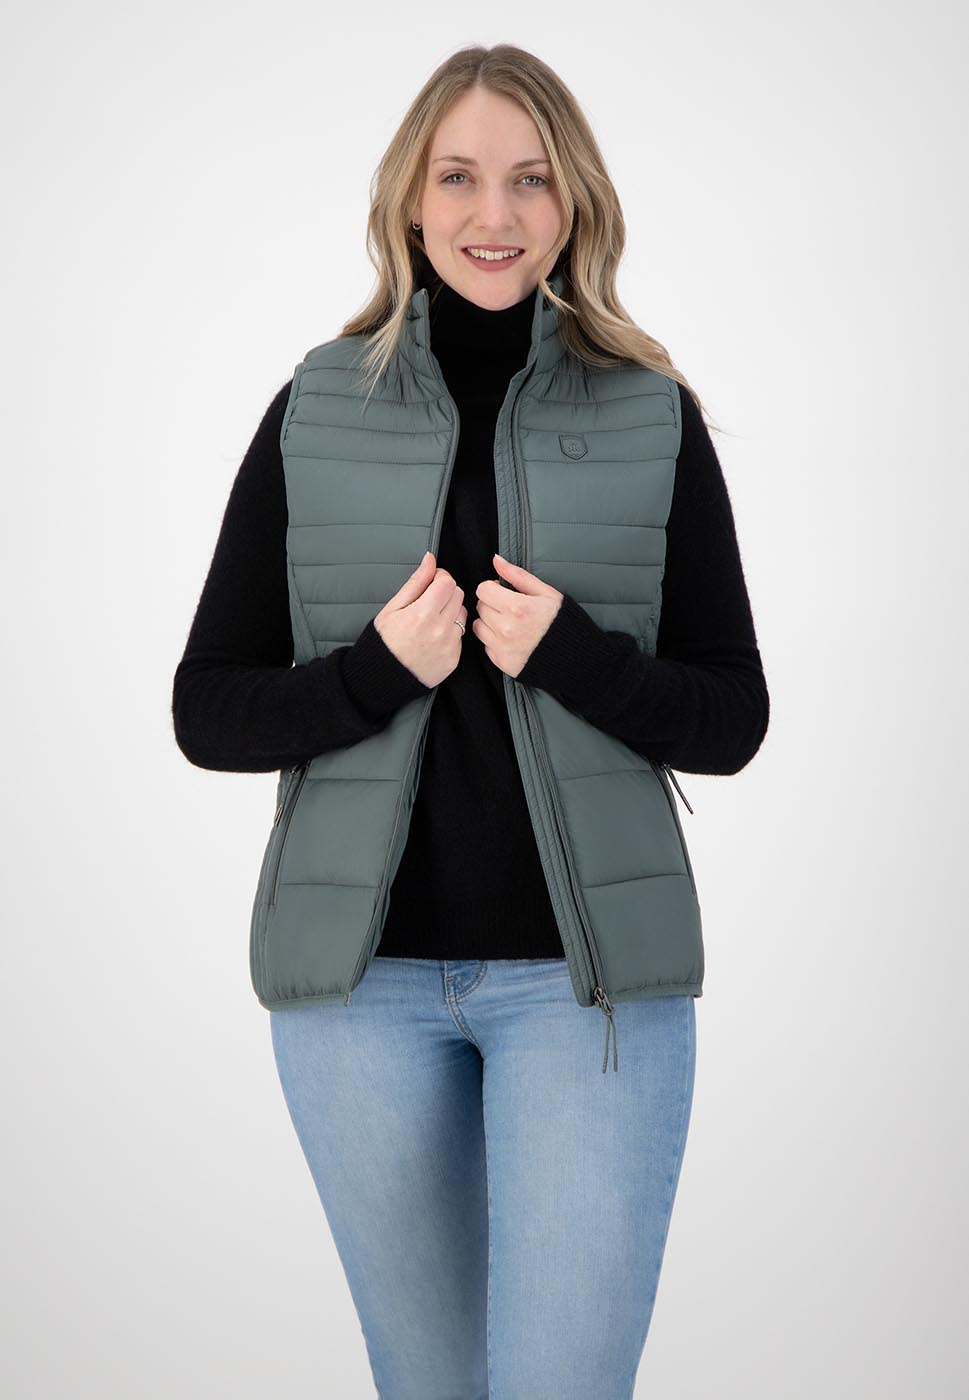 Kjelvik Scandinavian Clothing - Women Bodywarmers Denise Green